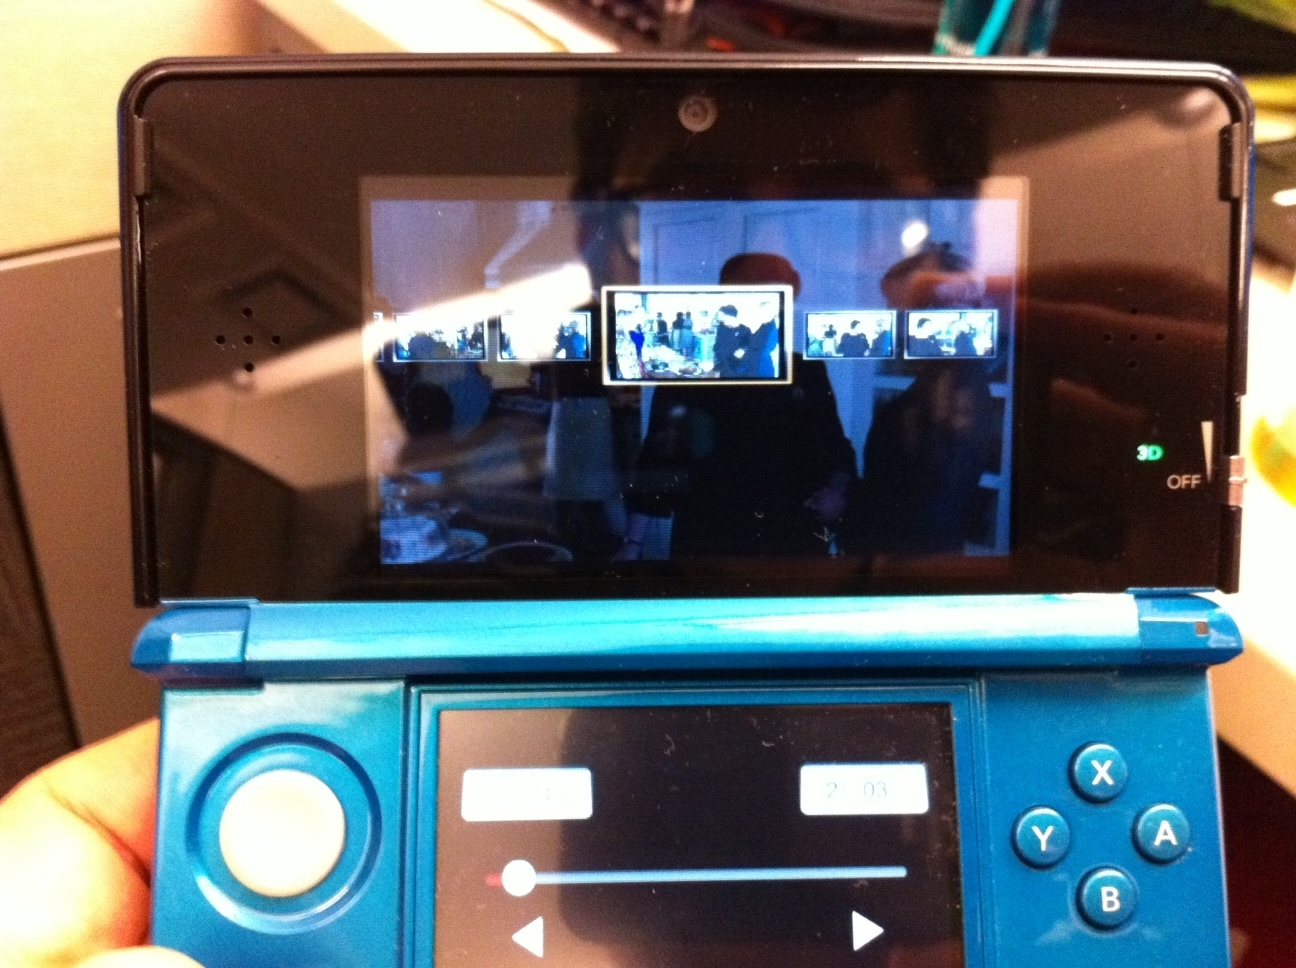 Skipping forward on the bottom screen's touch controls